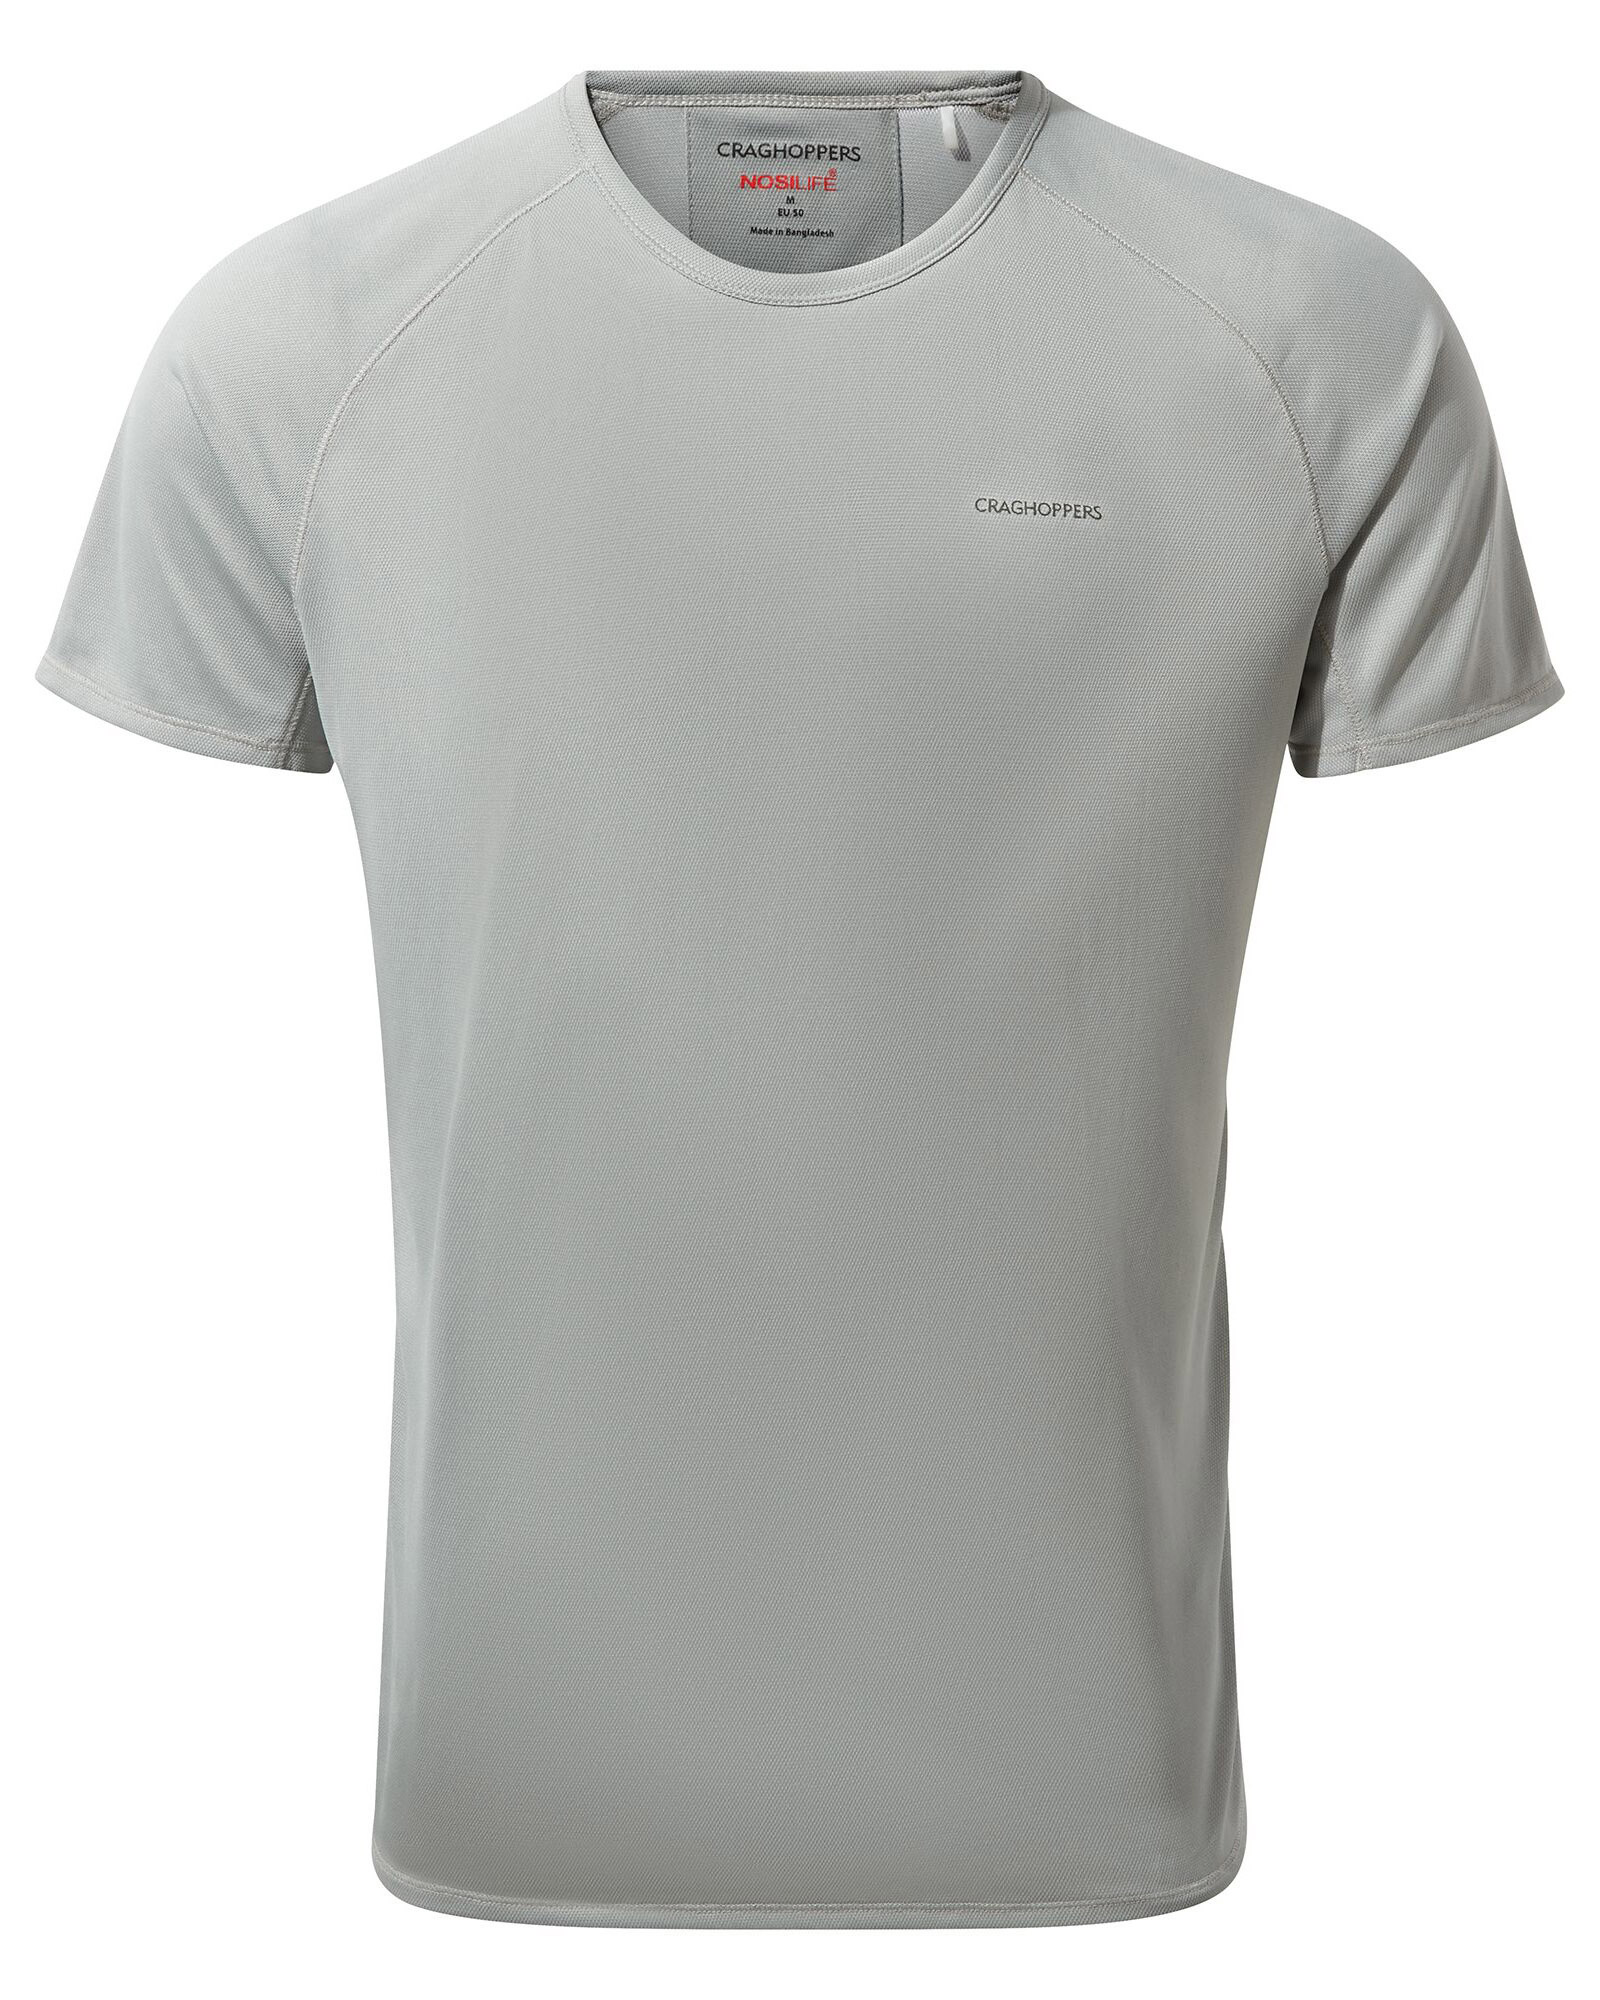 Craghoppers Men's NosiLife Short Sleeve Base Layer T-Shirt 0